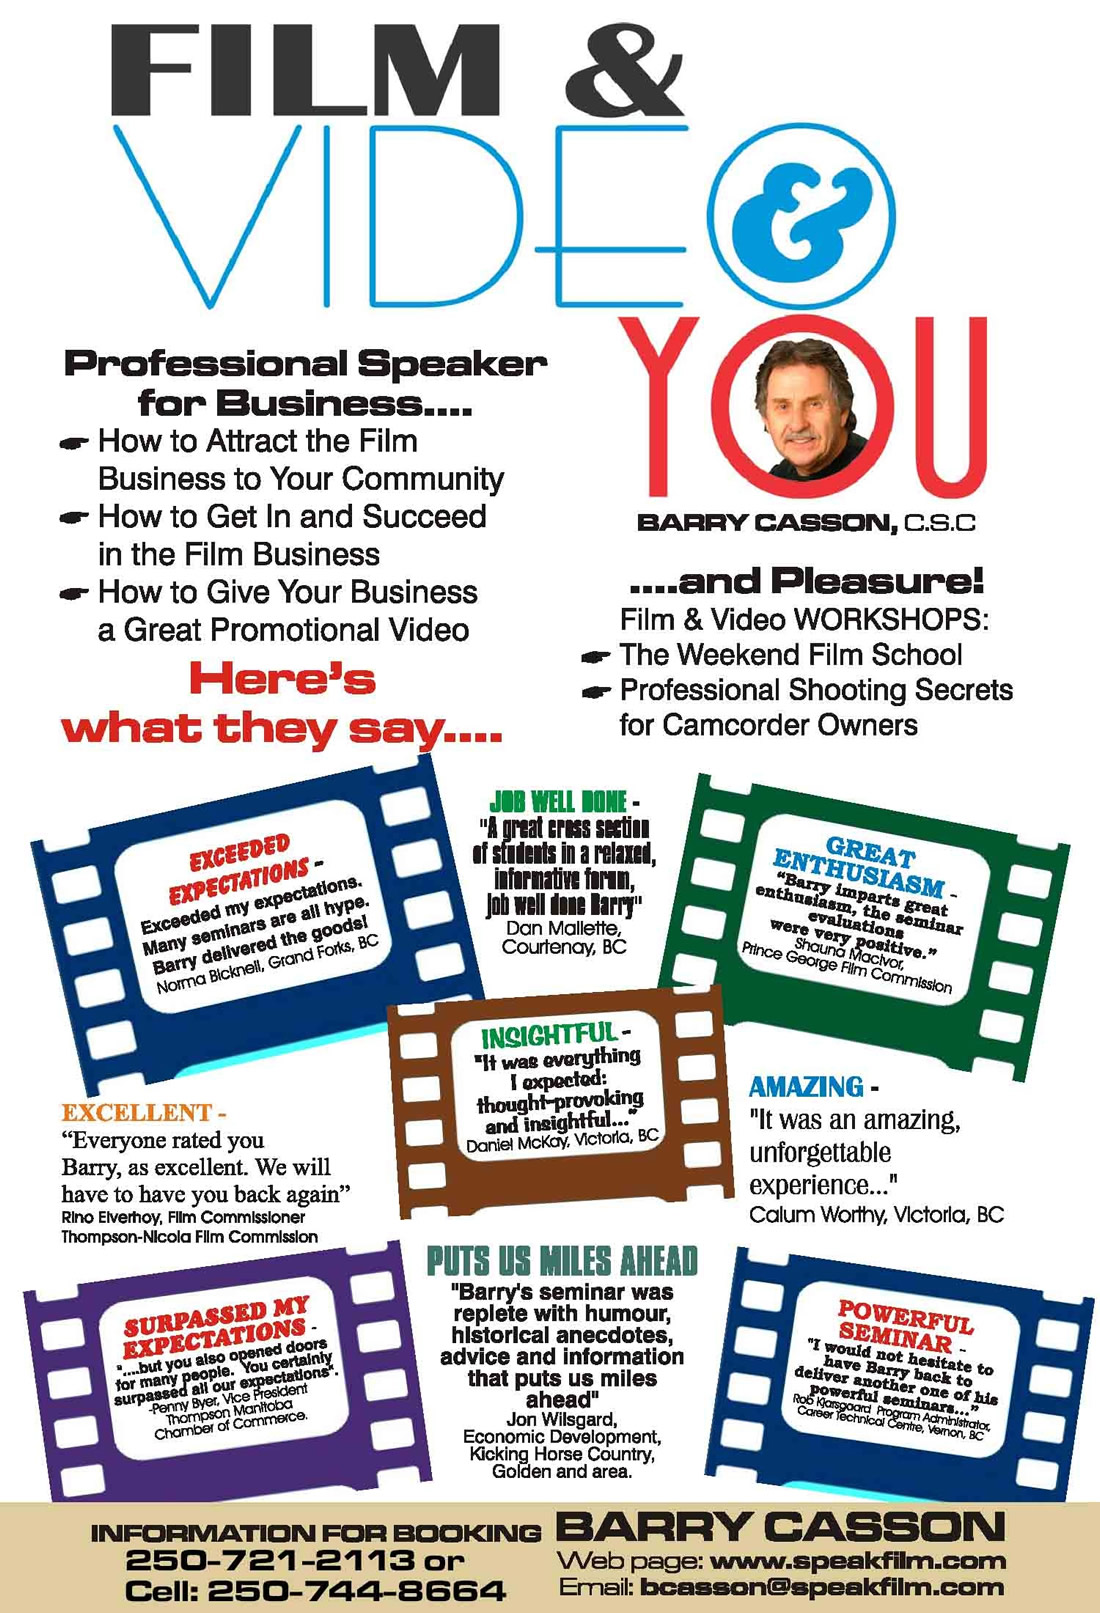 Film & Video Presentations for Your Business with Barry Casson, csc, Public Speaker